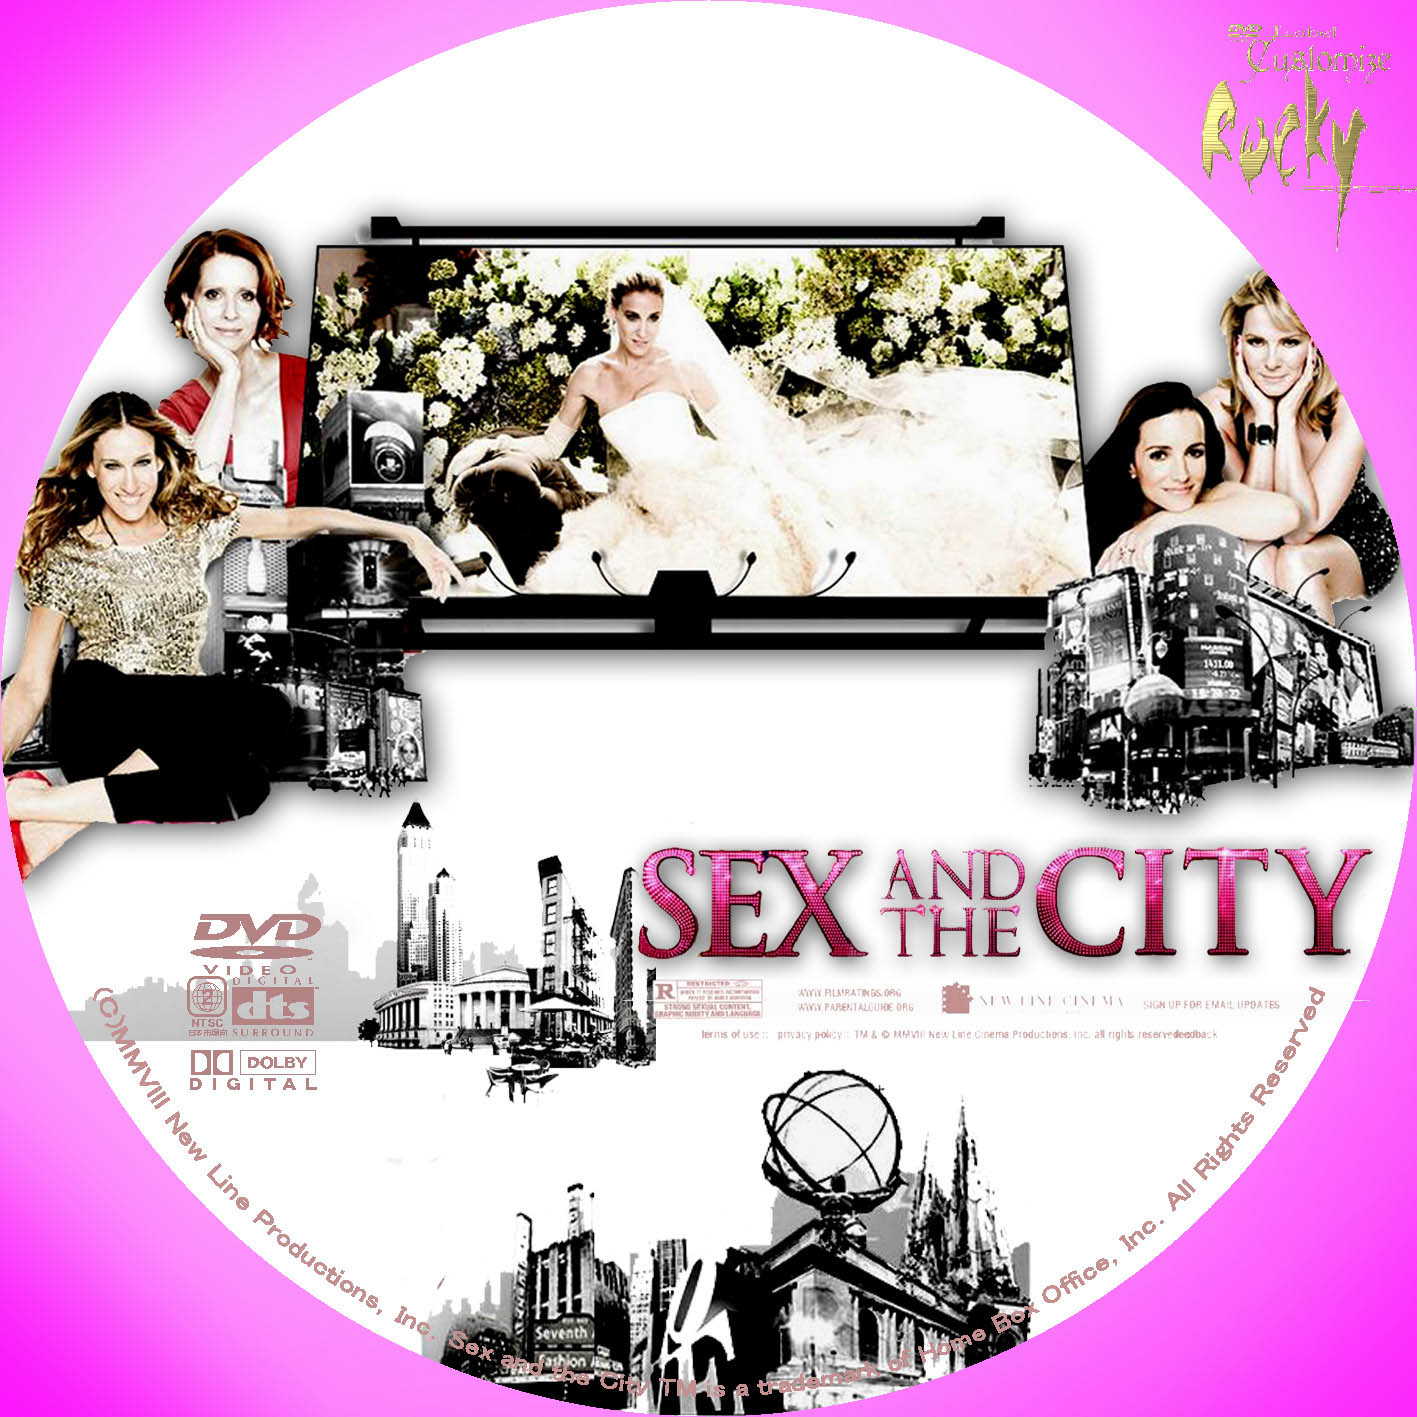 Bisexual in the city dvd